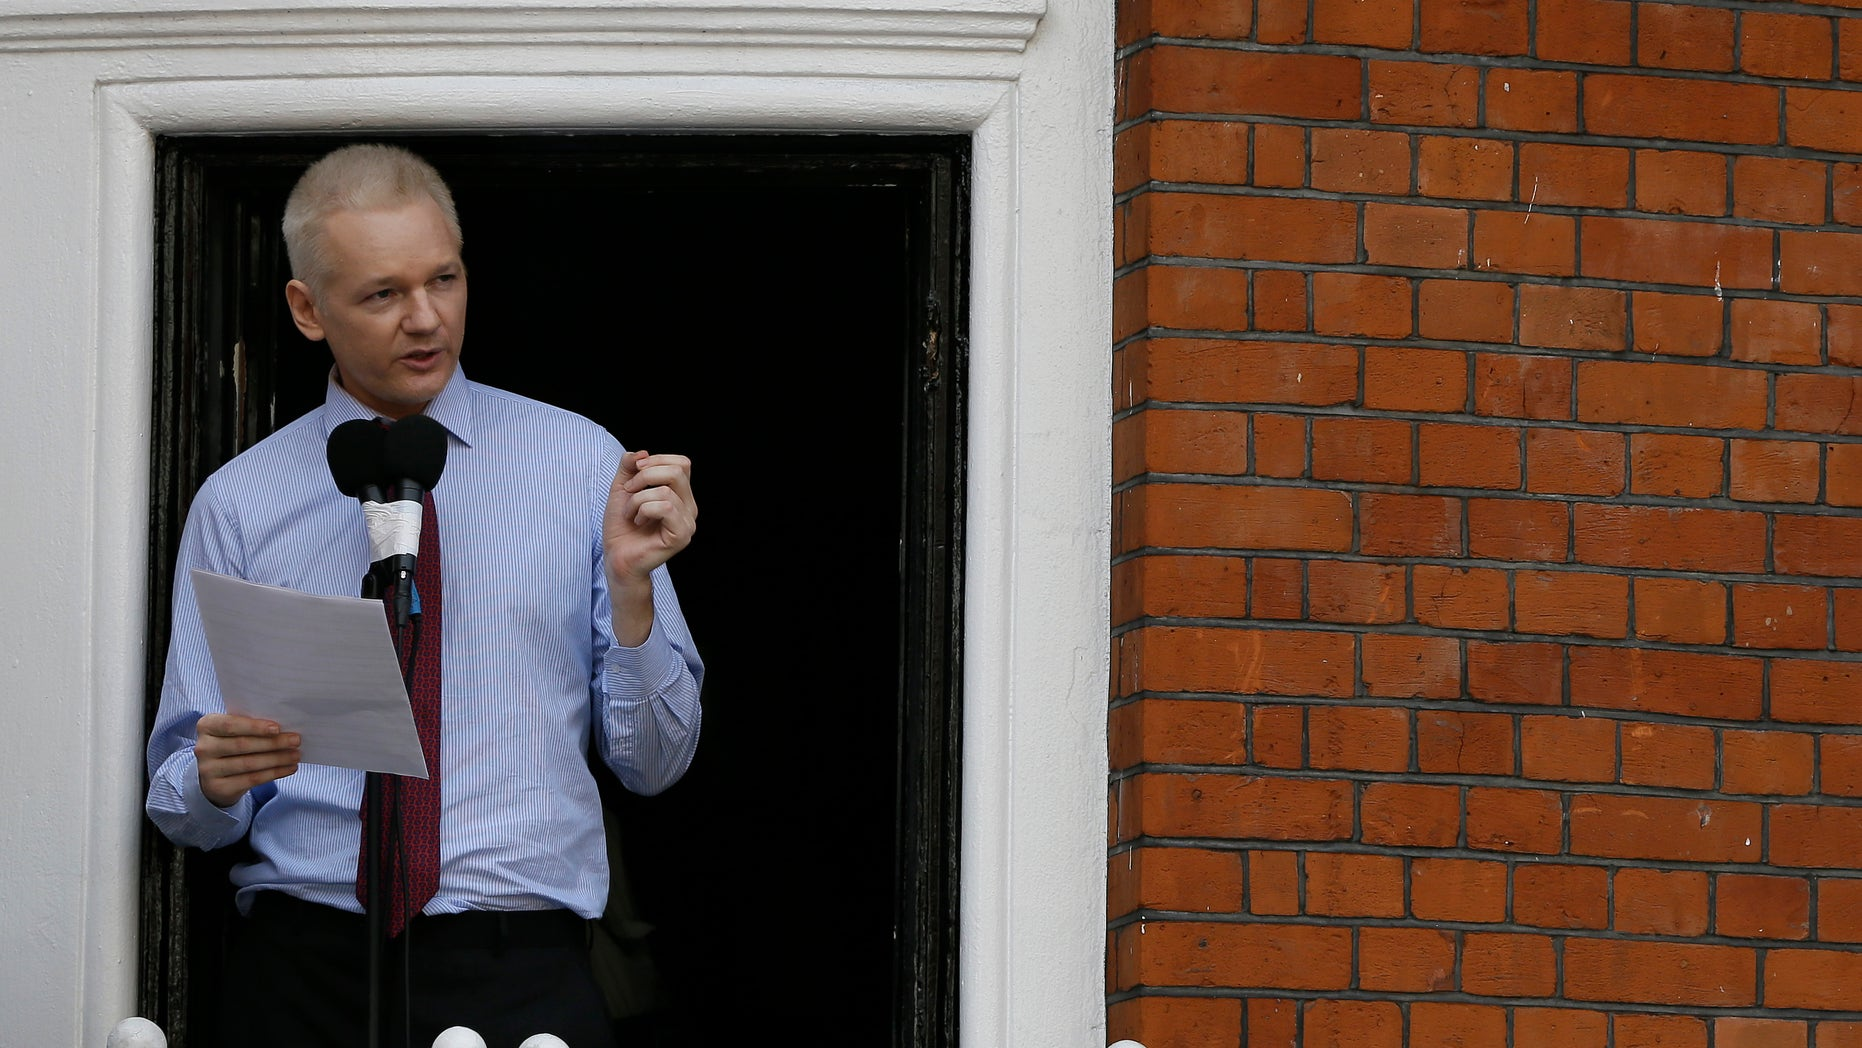 """Aug. 19, 2012: Julian Assange, founder of WikiLeaks makes a statement from a balcony of the Equador Embassy in London.  Assange called on United States President Barack Obama to end a """"witch hunt"""" against the secret-spilling WikiLeaks organization."""